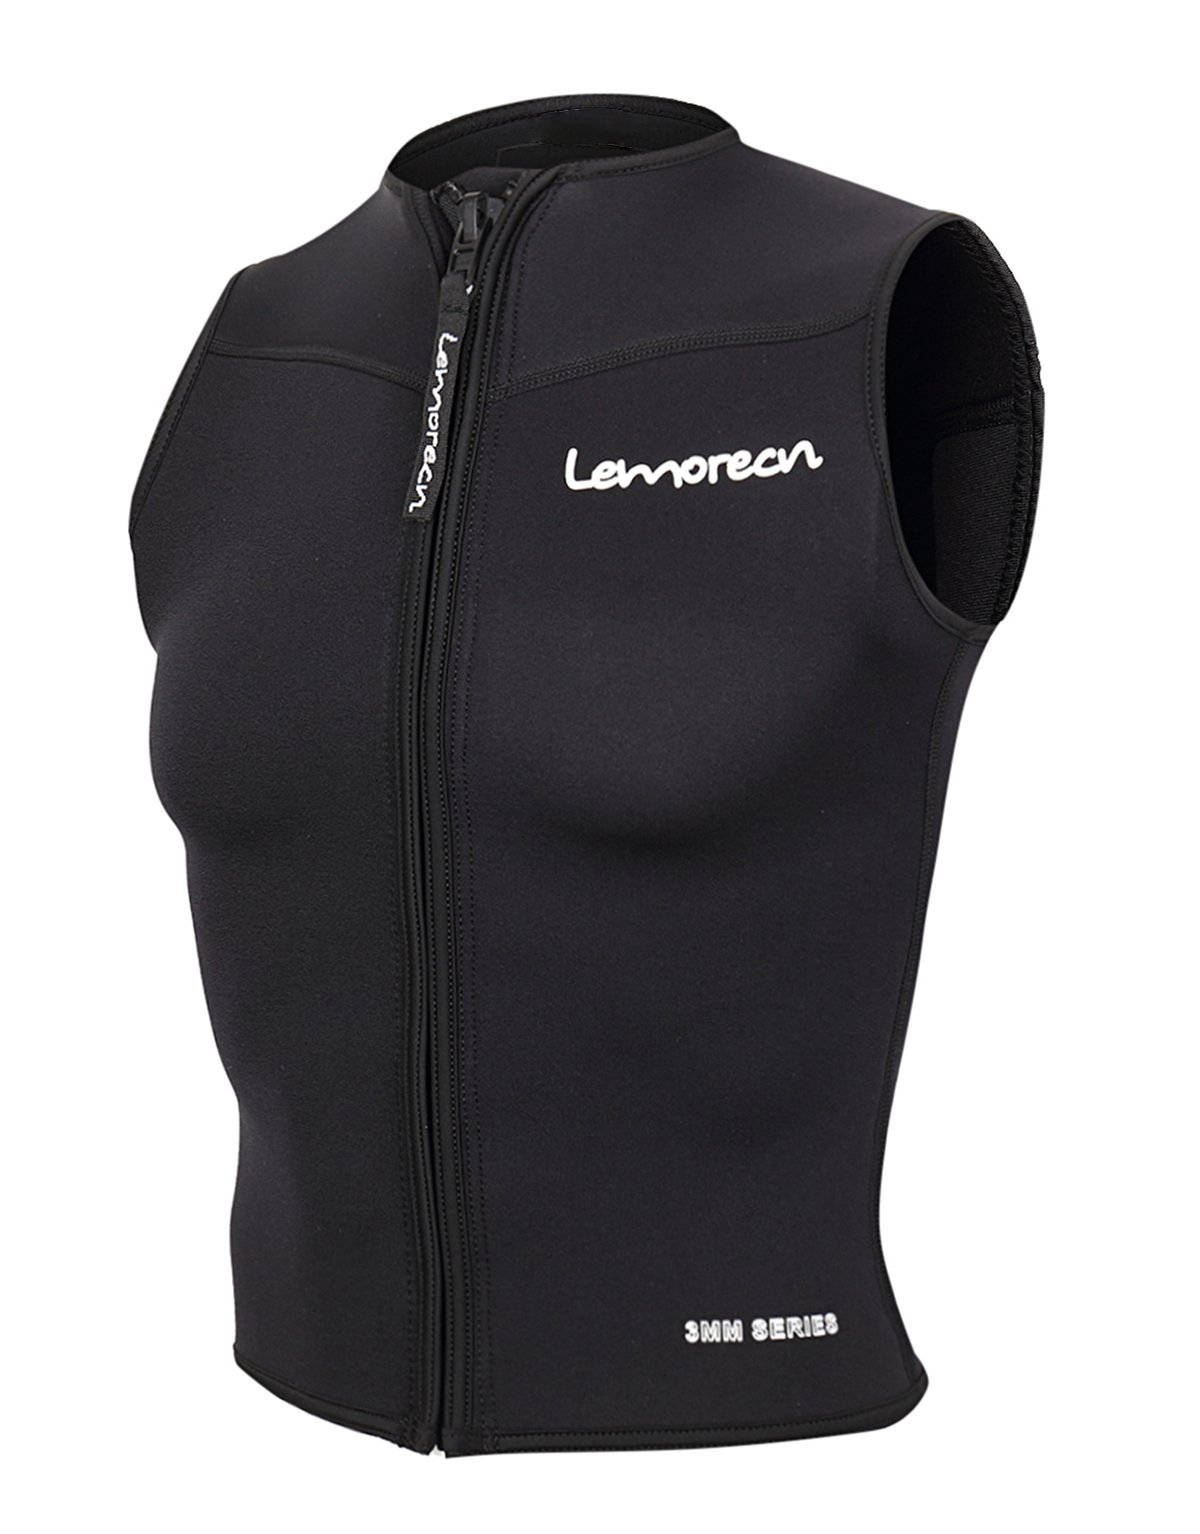 Lemorecn Men Wetsuits Top Premium Neoprene 3mm Zipper Diving Vest (2095,M) by Lemorecn